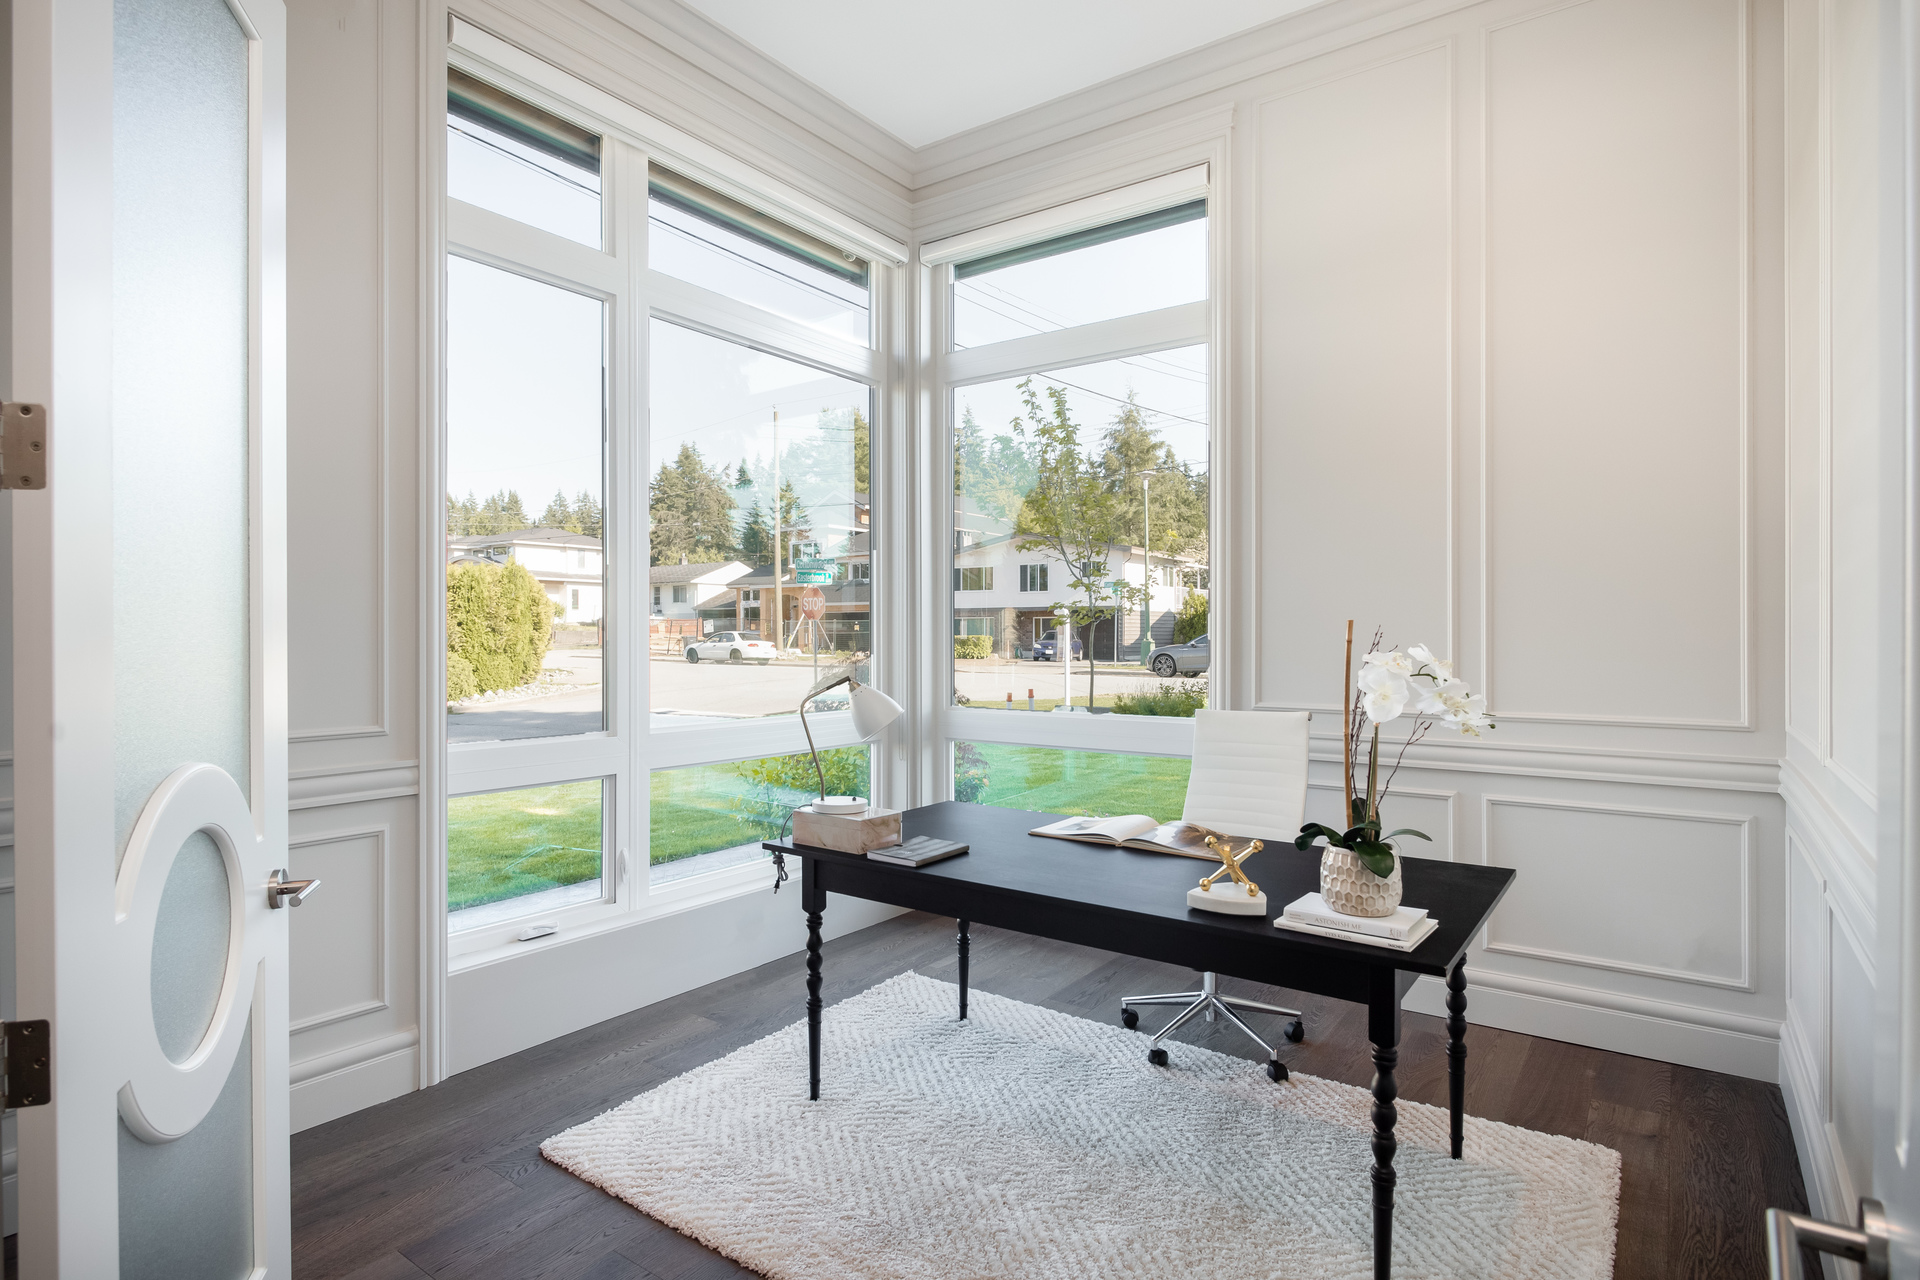 35 at 688 Easterbrook, Coquitlam West, Coquitlam